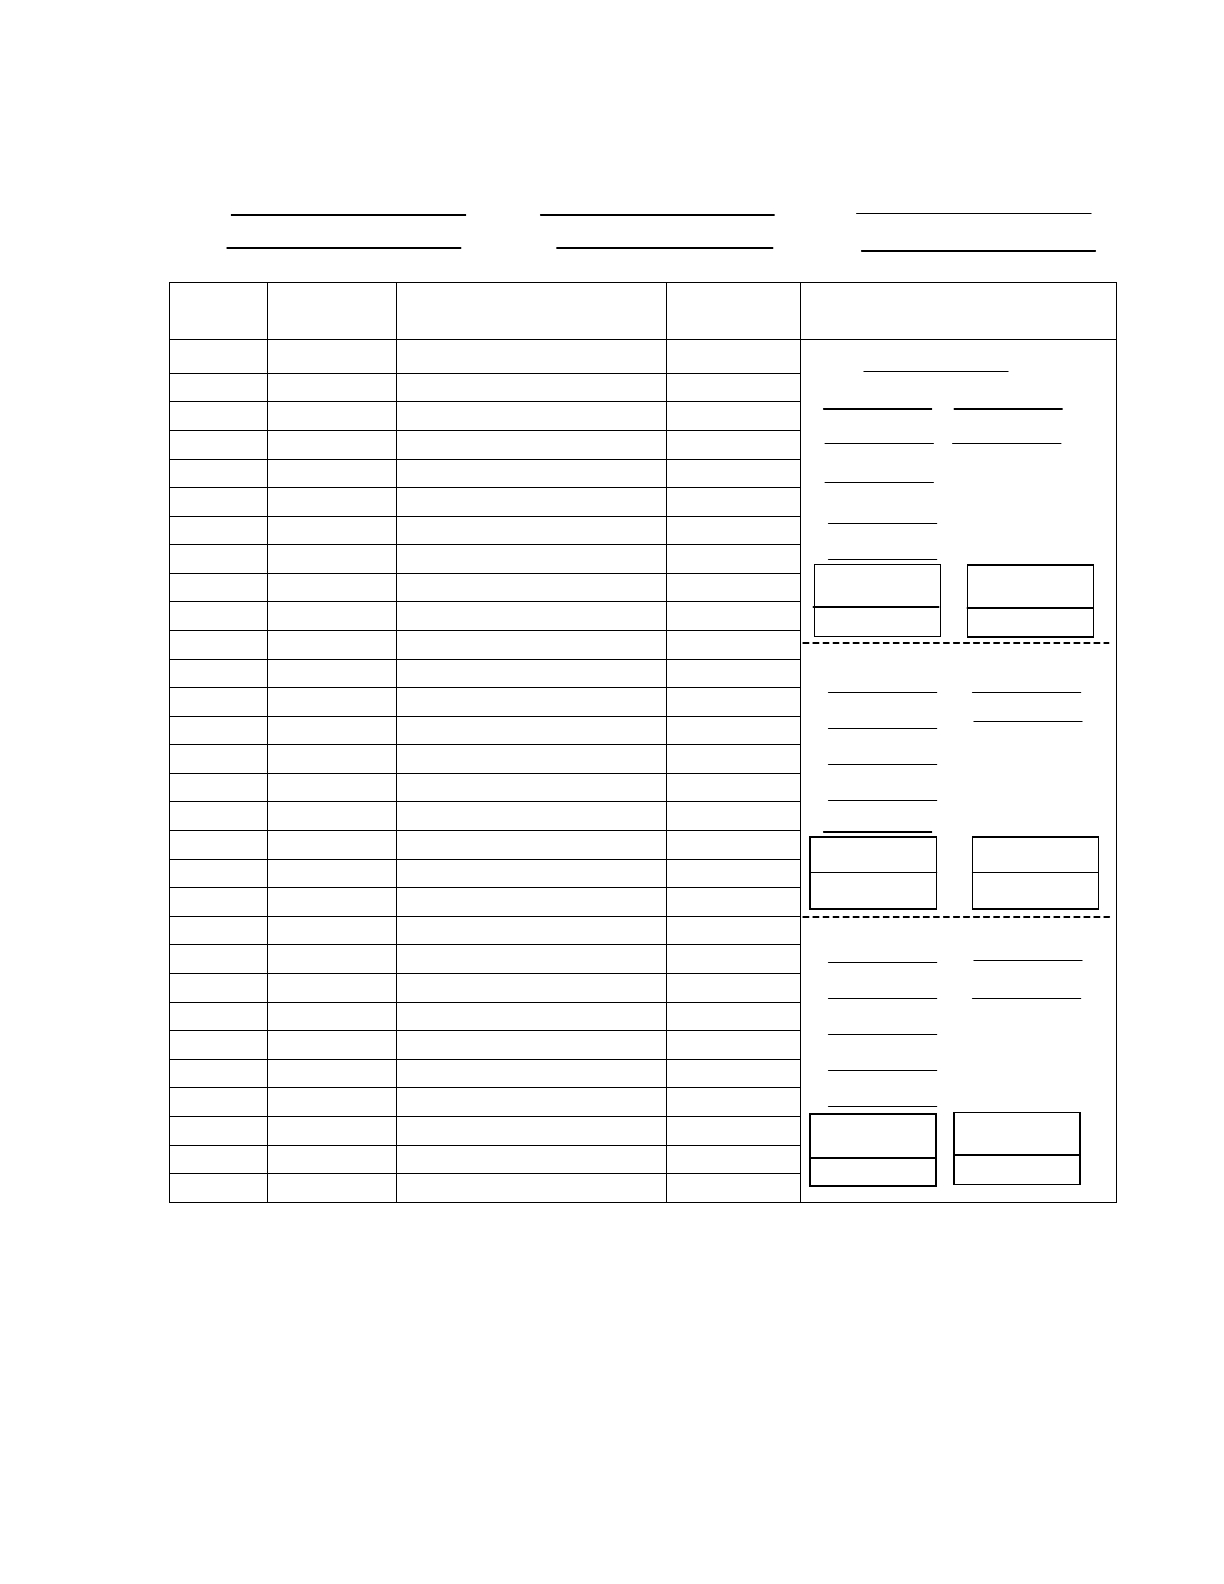 Cross Country Scoring Spreadsheet With Cross Country Score Sheet Free Download